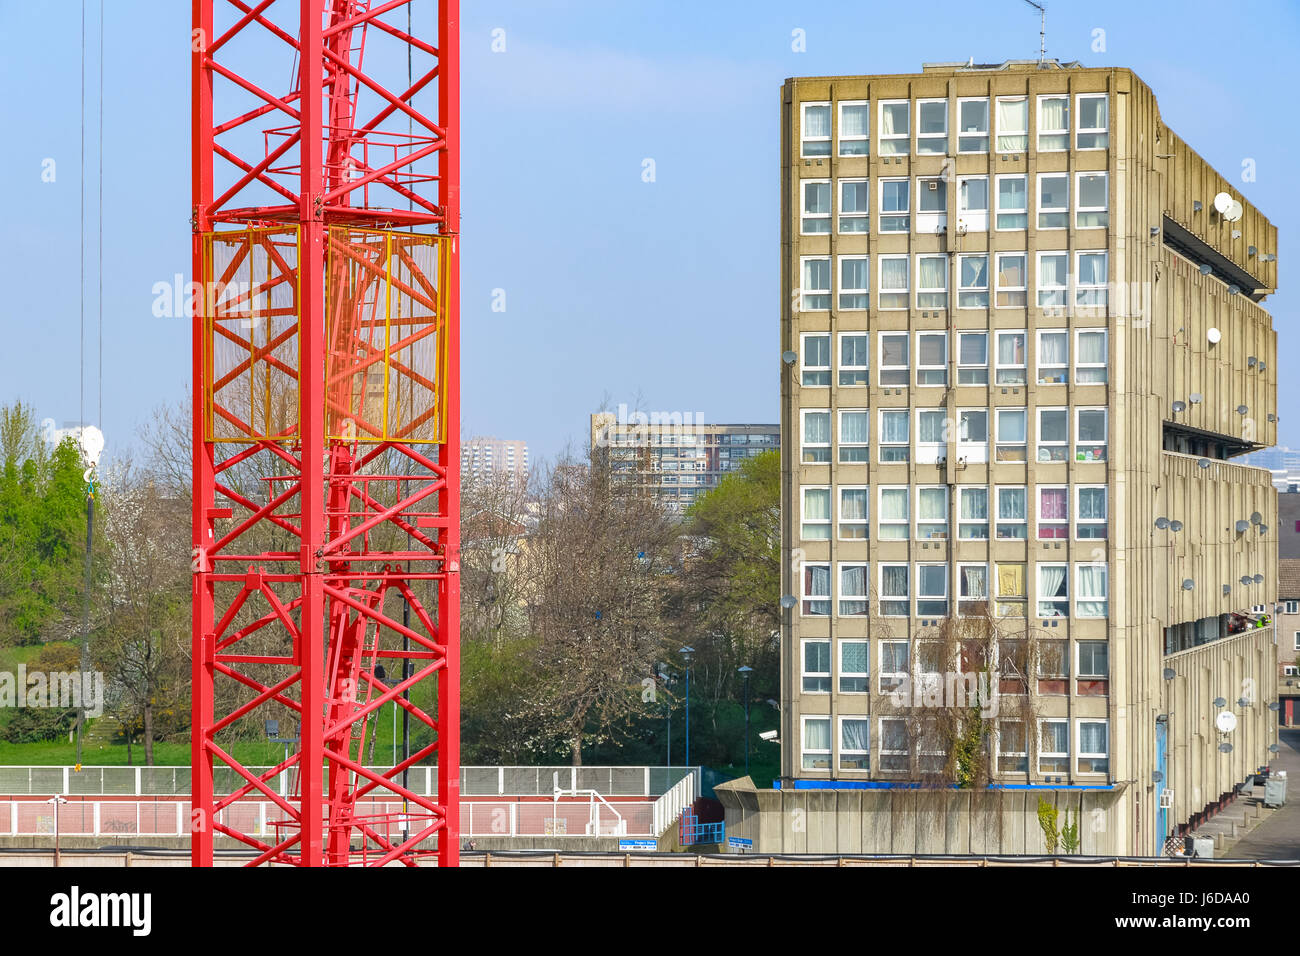 Red building cranes with East London council housing blocks in the background - Stock Image